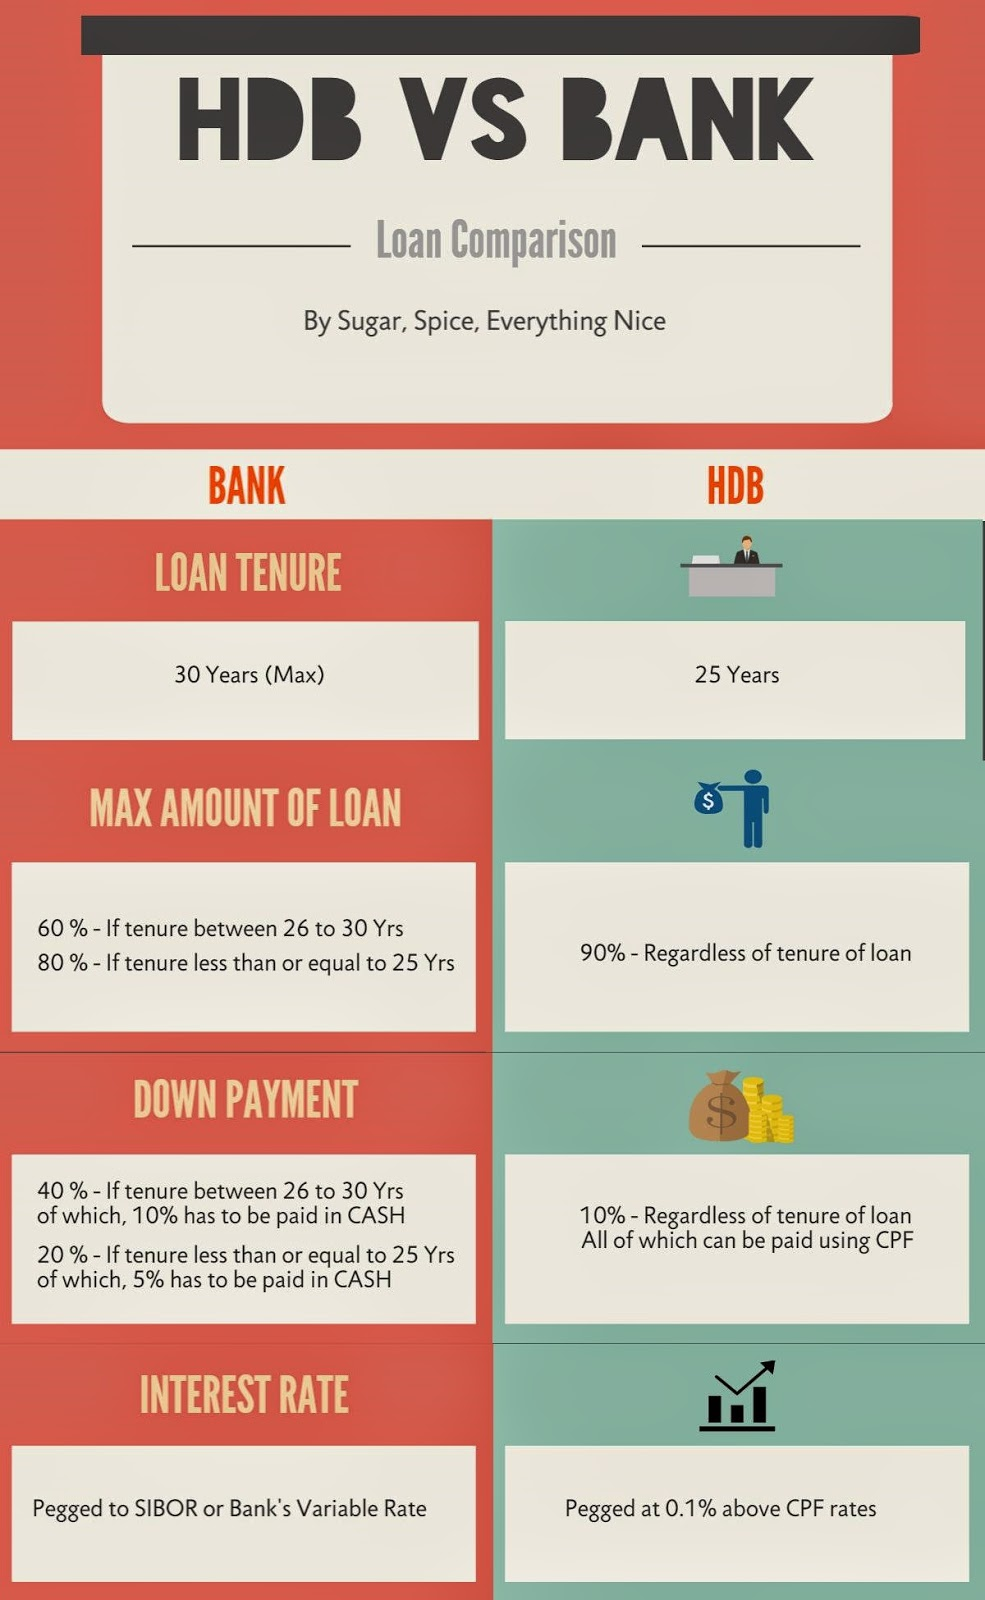 Bank Vs HDB Loan